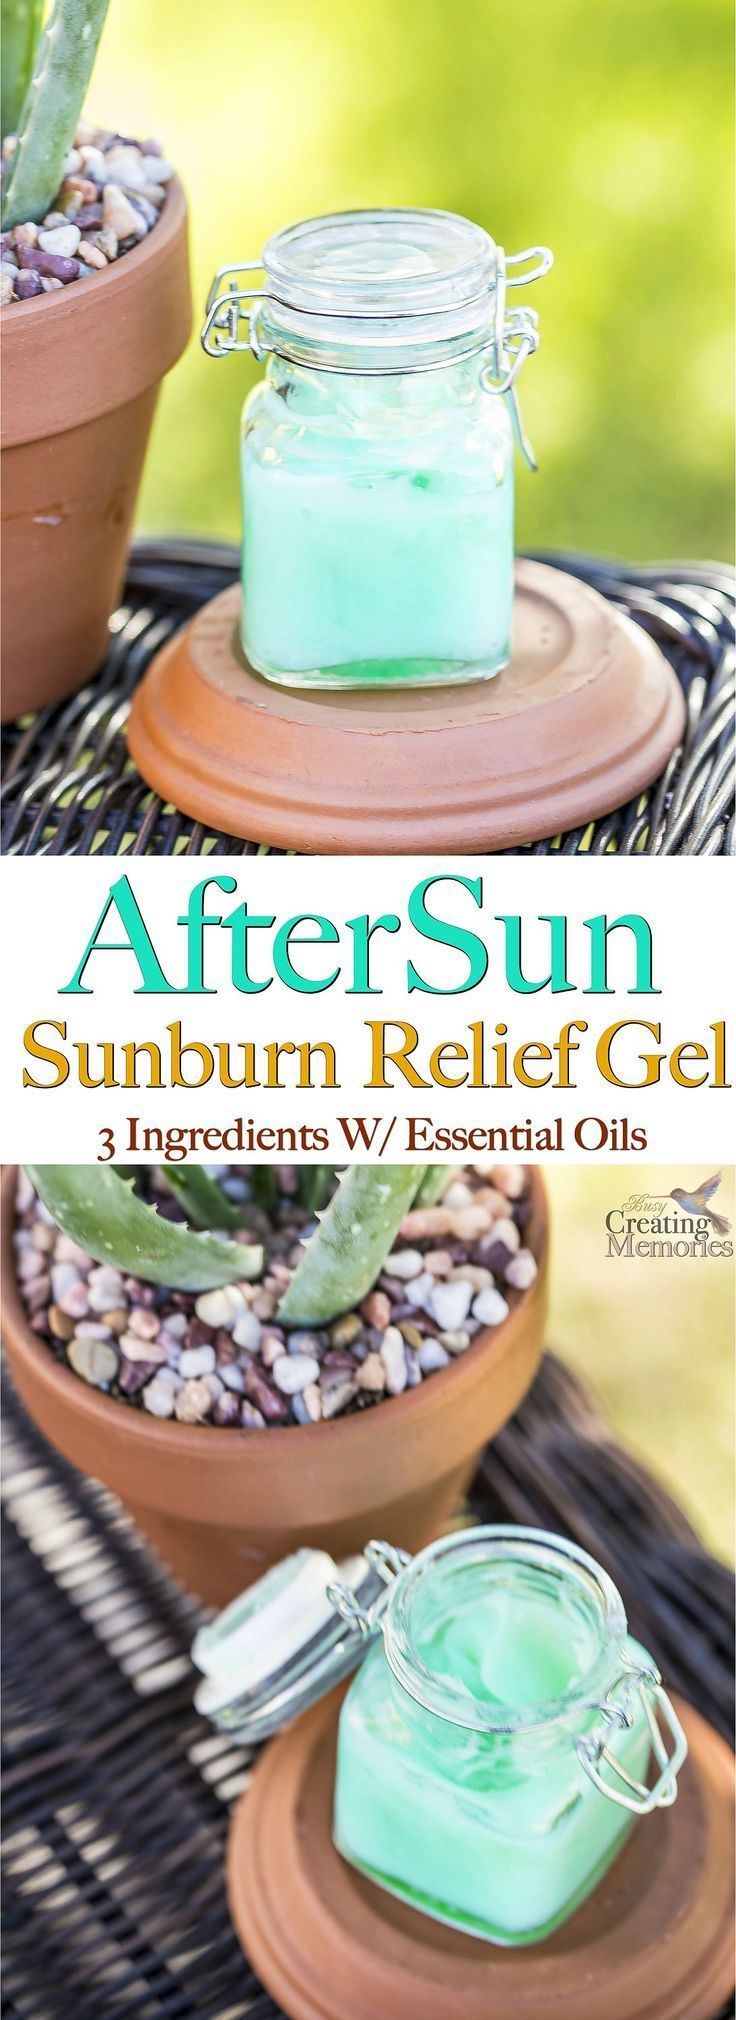 Best Homemade AfterSun Sunburn Relief Gel w/ 3 ingredients Say Goodbye to Painful, Itchy, Peeling sunburns! This AfterSun Sunburn relief Gel instantly Soothes, Cools, heals and moisturizes your skin for quick healing. #naturalism